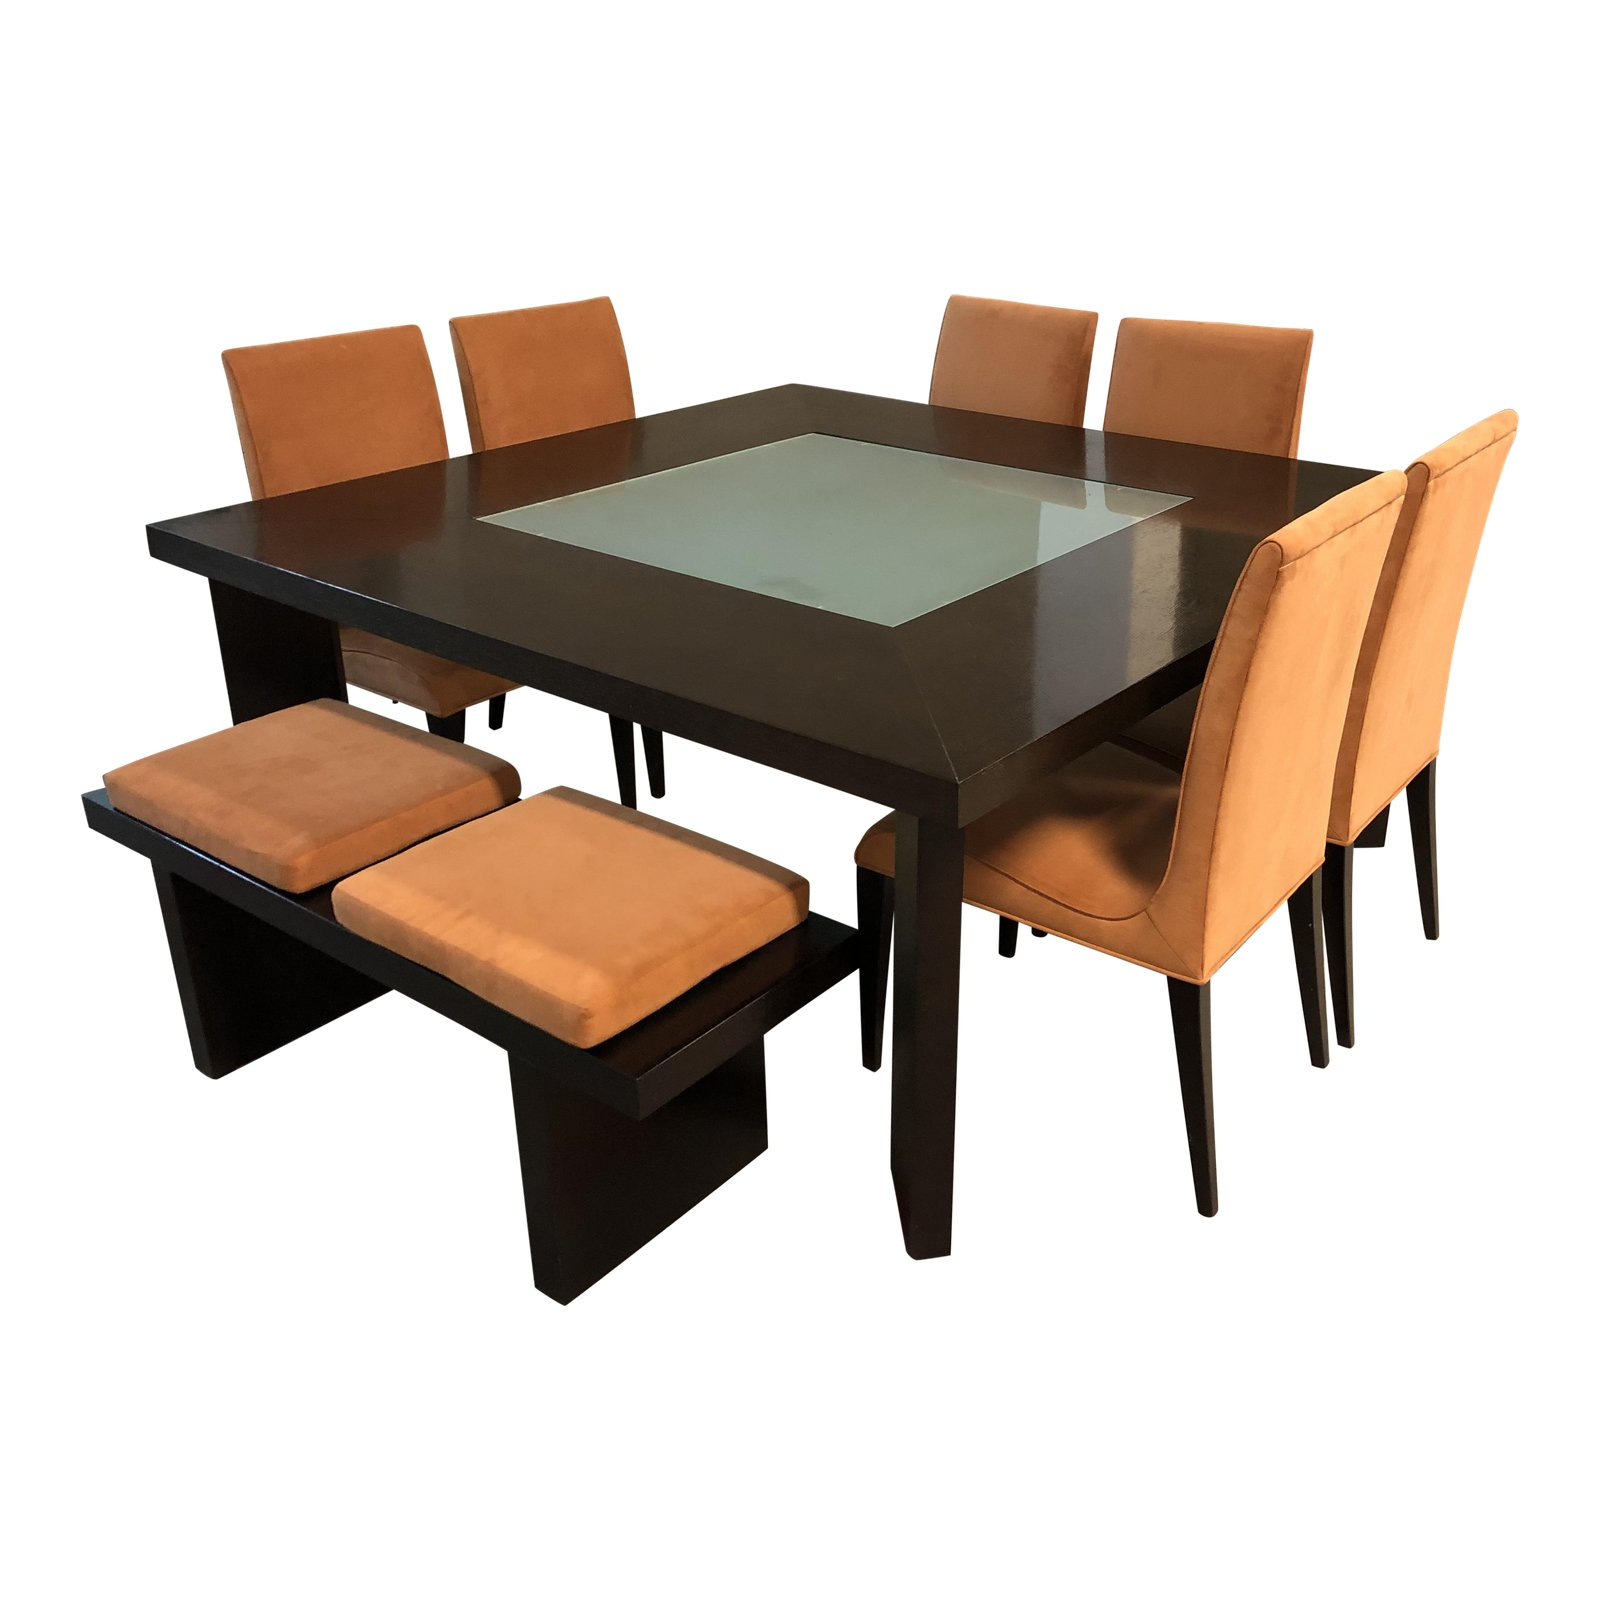 Tremendous Creative Elegance Dining Table Chairs Bench Set Original Price 8 520 Alphanode Cool Chair Designs And Ideas Alphanodeonline